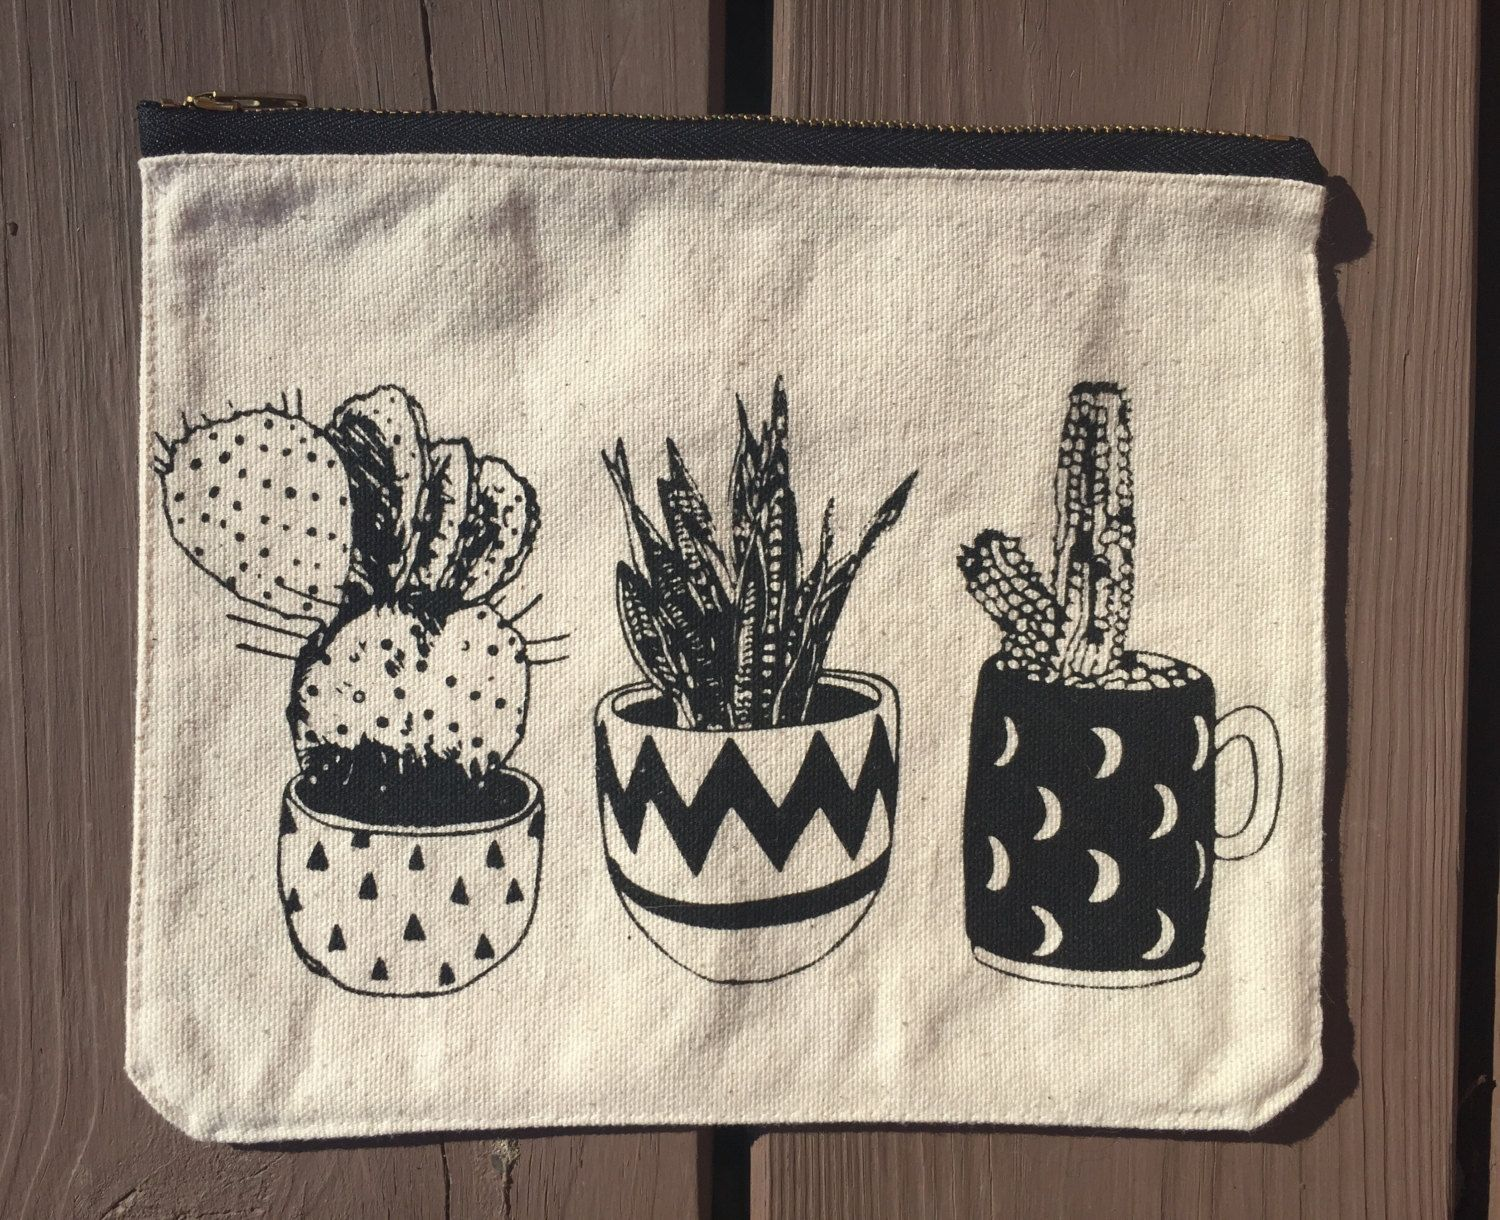 Handmade Plant Lover Zipper Pouch, Canvas, Brass Zipper, Leather Pull, Screen Printed, Prickly Pear Pouch, Plant Addict Utility Pouch by SeleApparel on Etsy